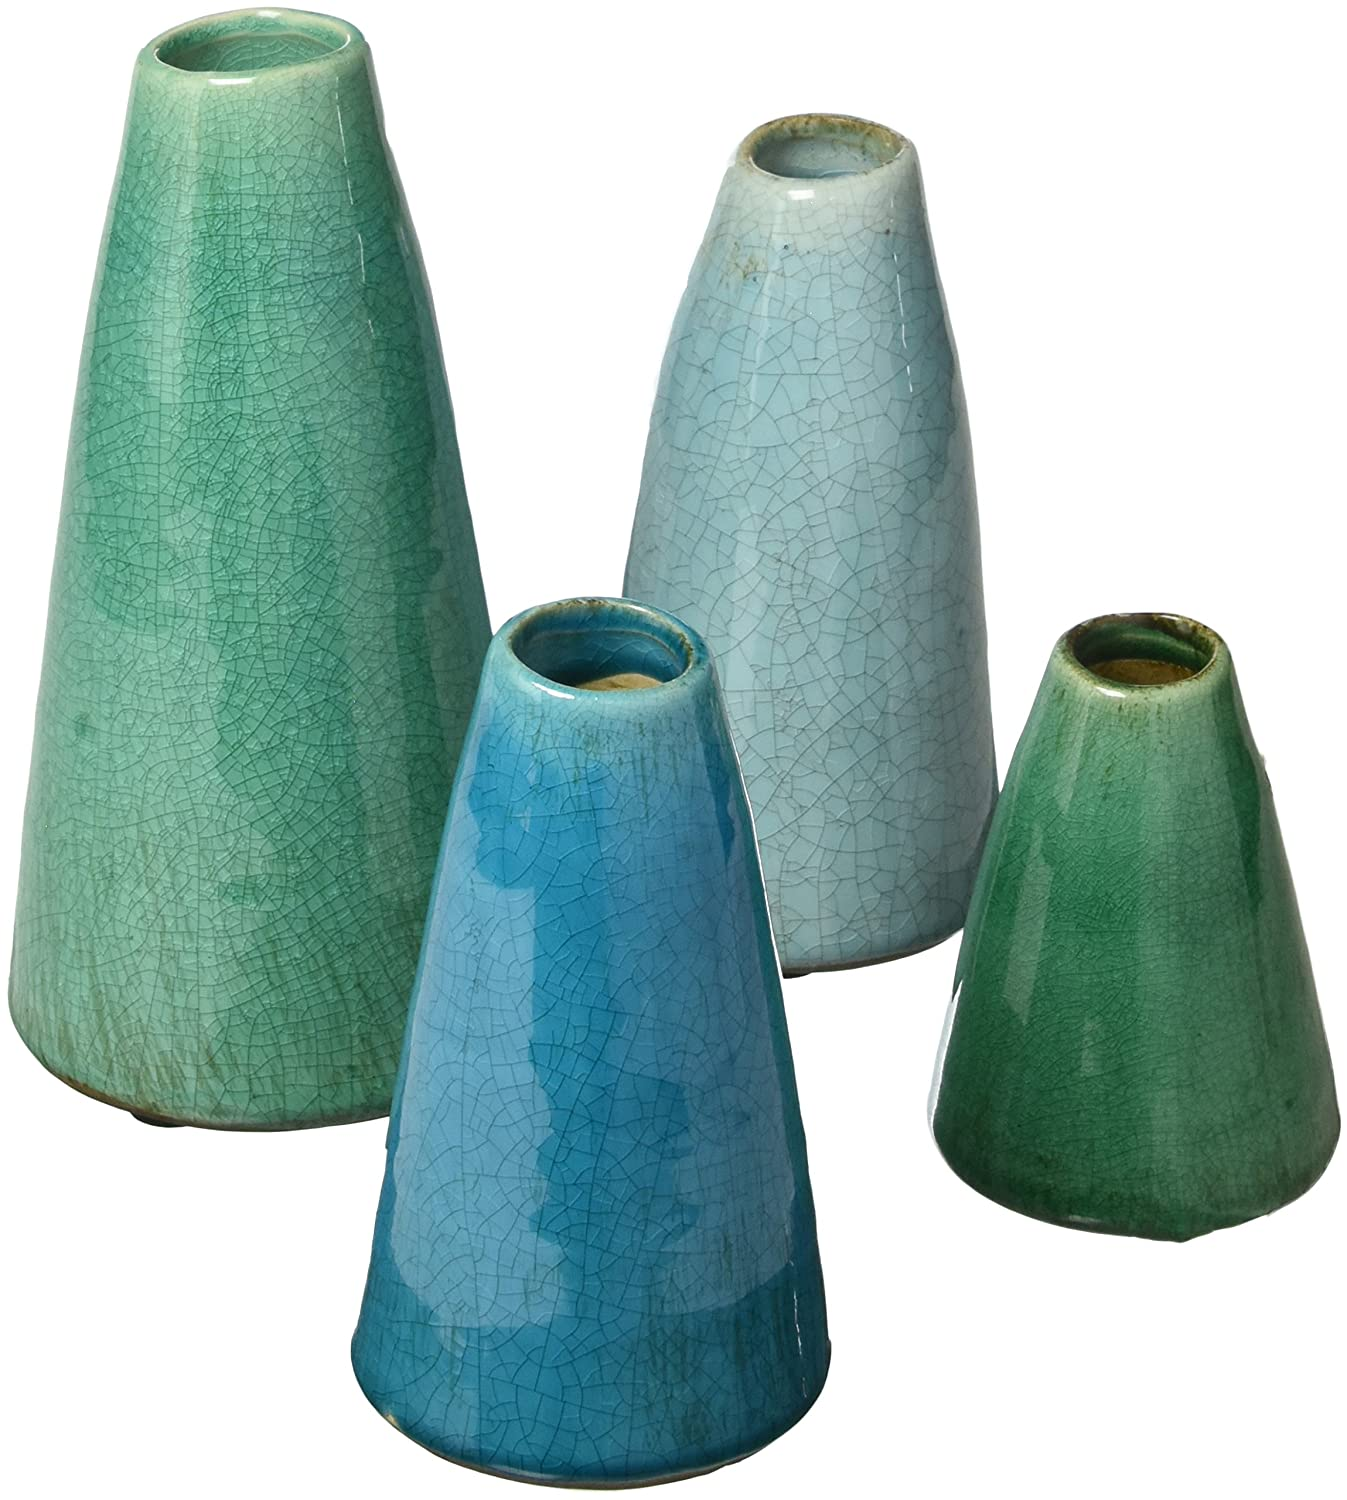 Crackle finish blue and green vase set for French farmhouse decorated spaces.